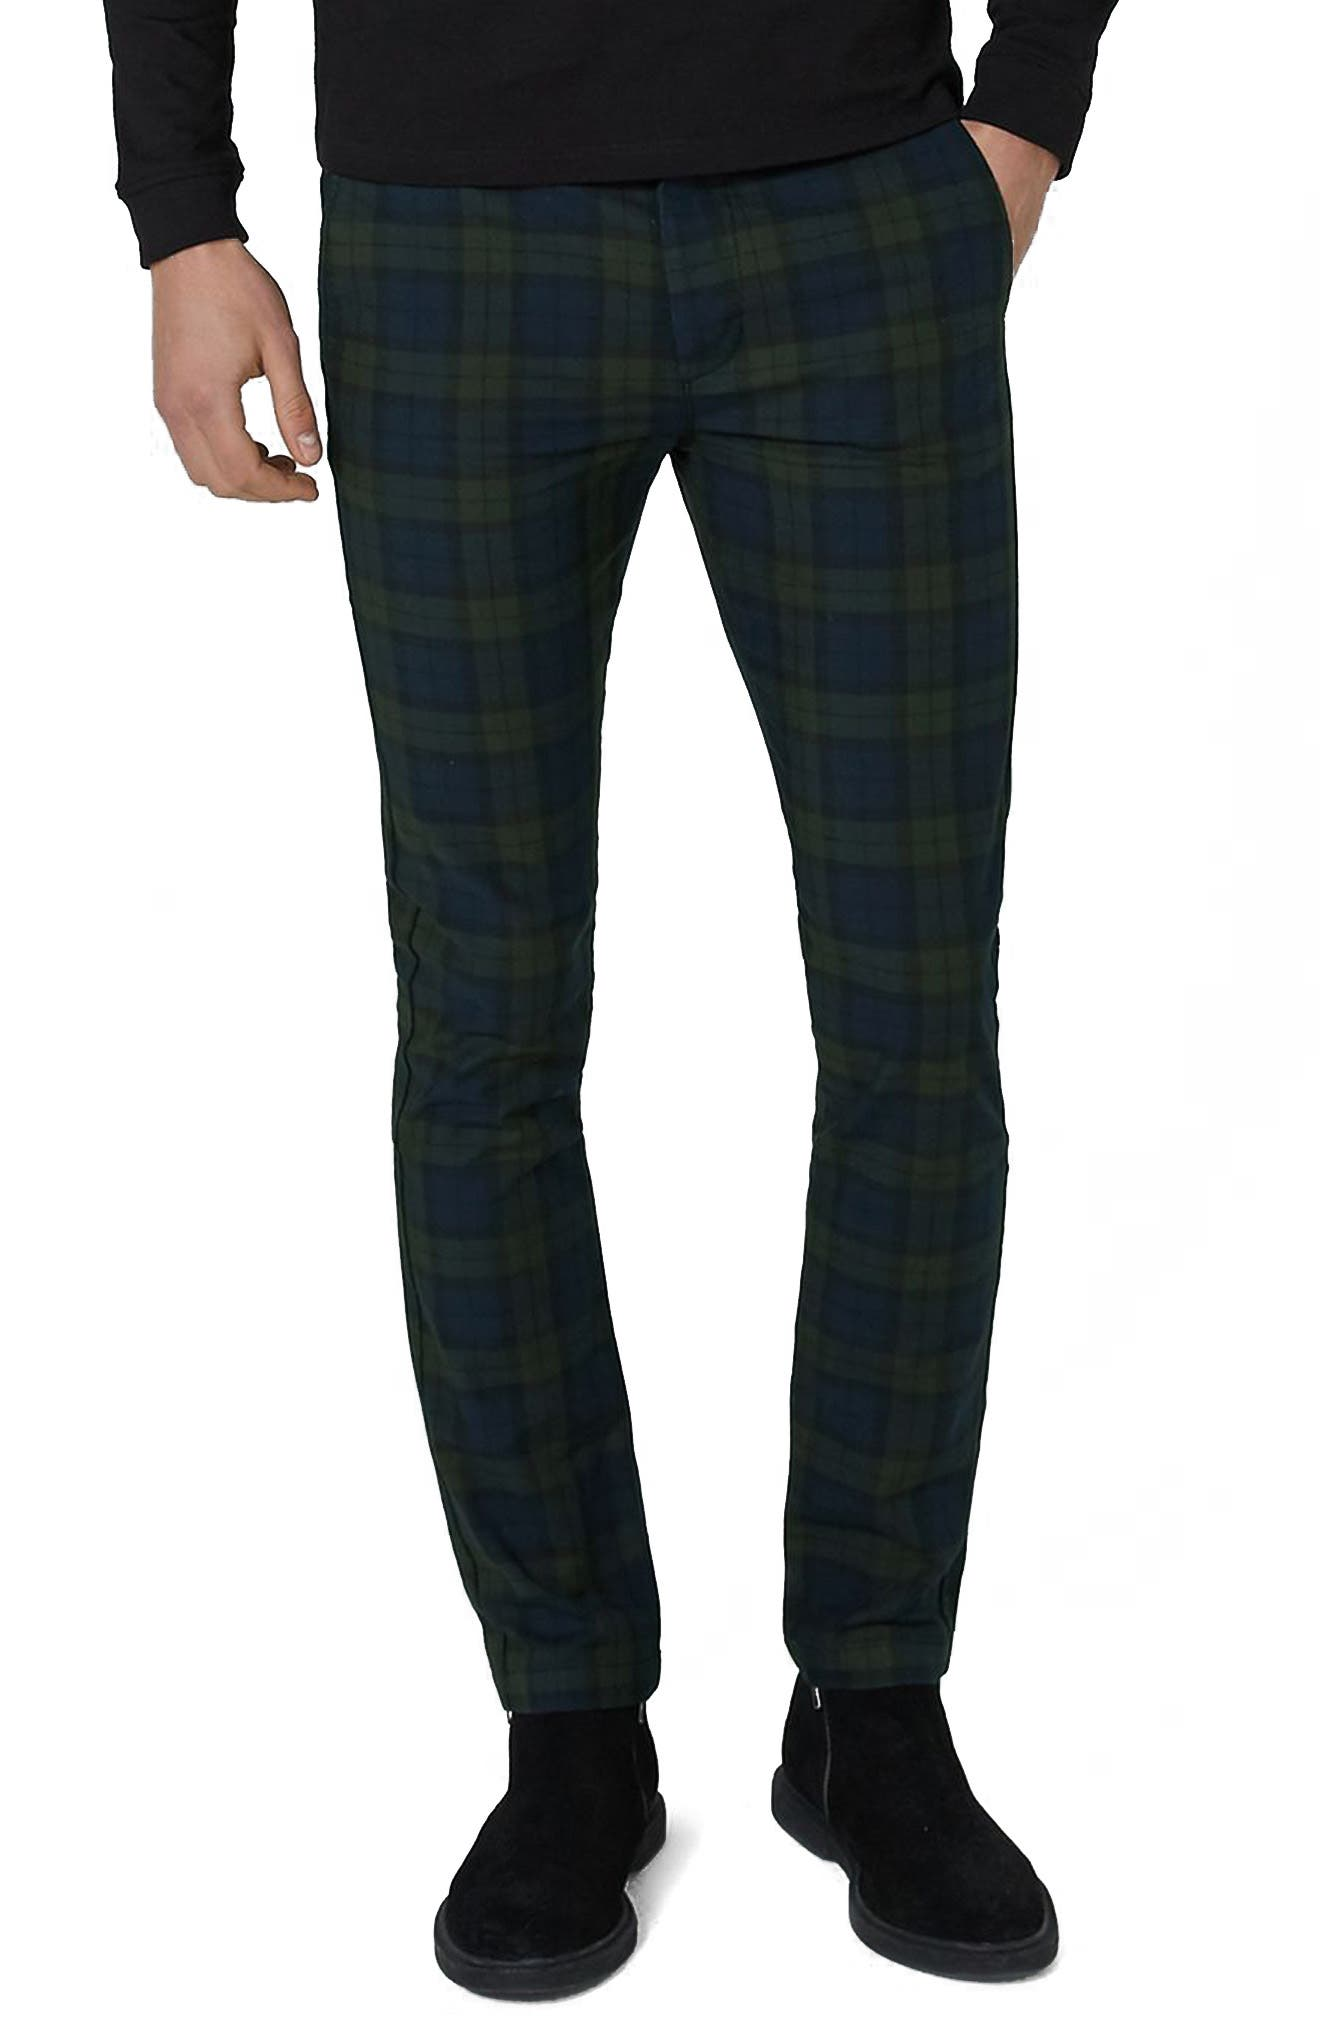 Main Image - Topman Black Watch Check Stretch Skinny Fit Trousers